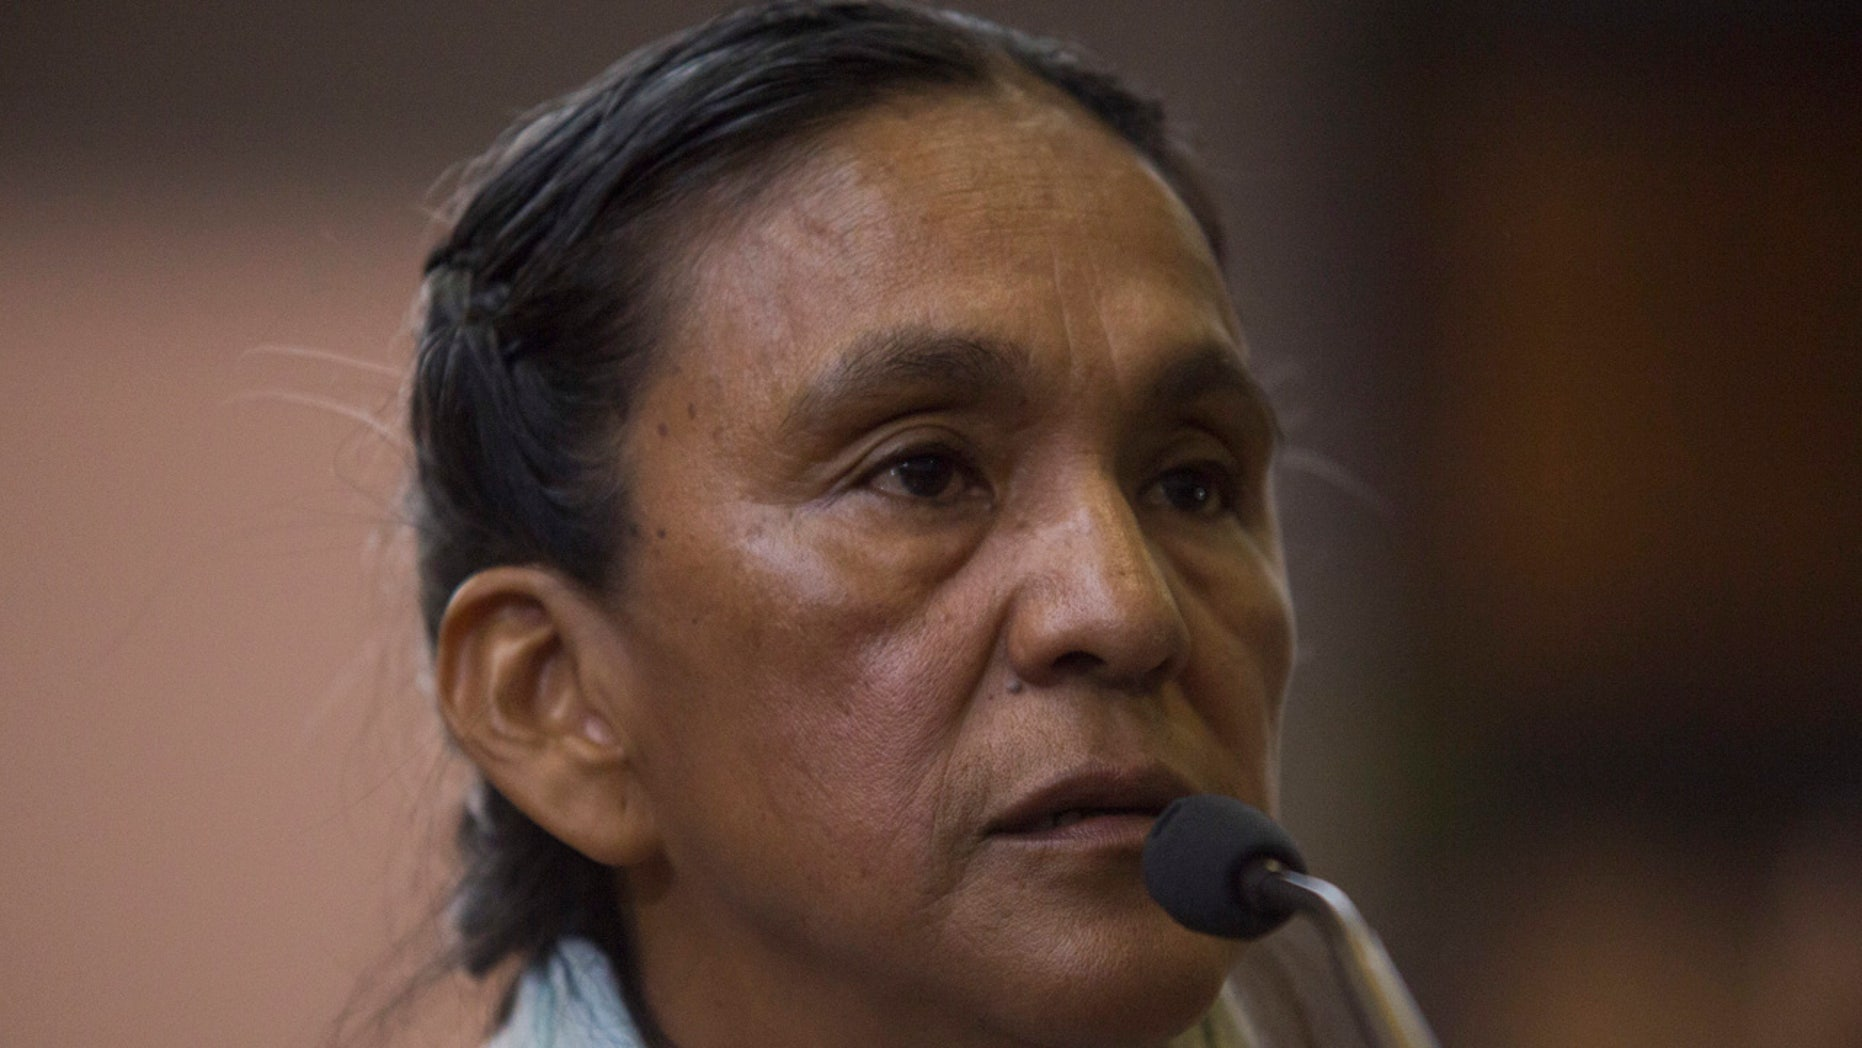 Activist Milagro Sala speaks before being given a guilty verdict at a courtroom in San Salvador de Jujuy, in the northern Argentine province of Jujuy, Wednesday, Dec. 28, 2016.